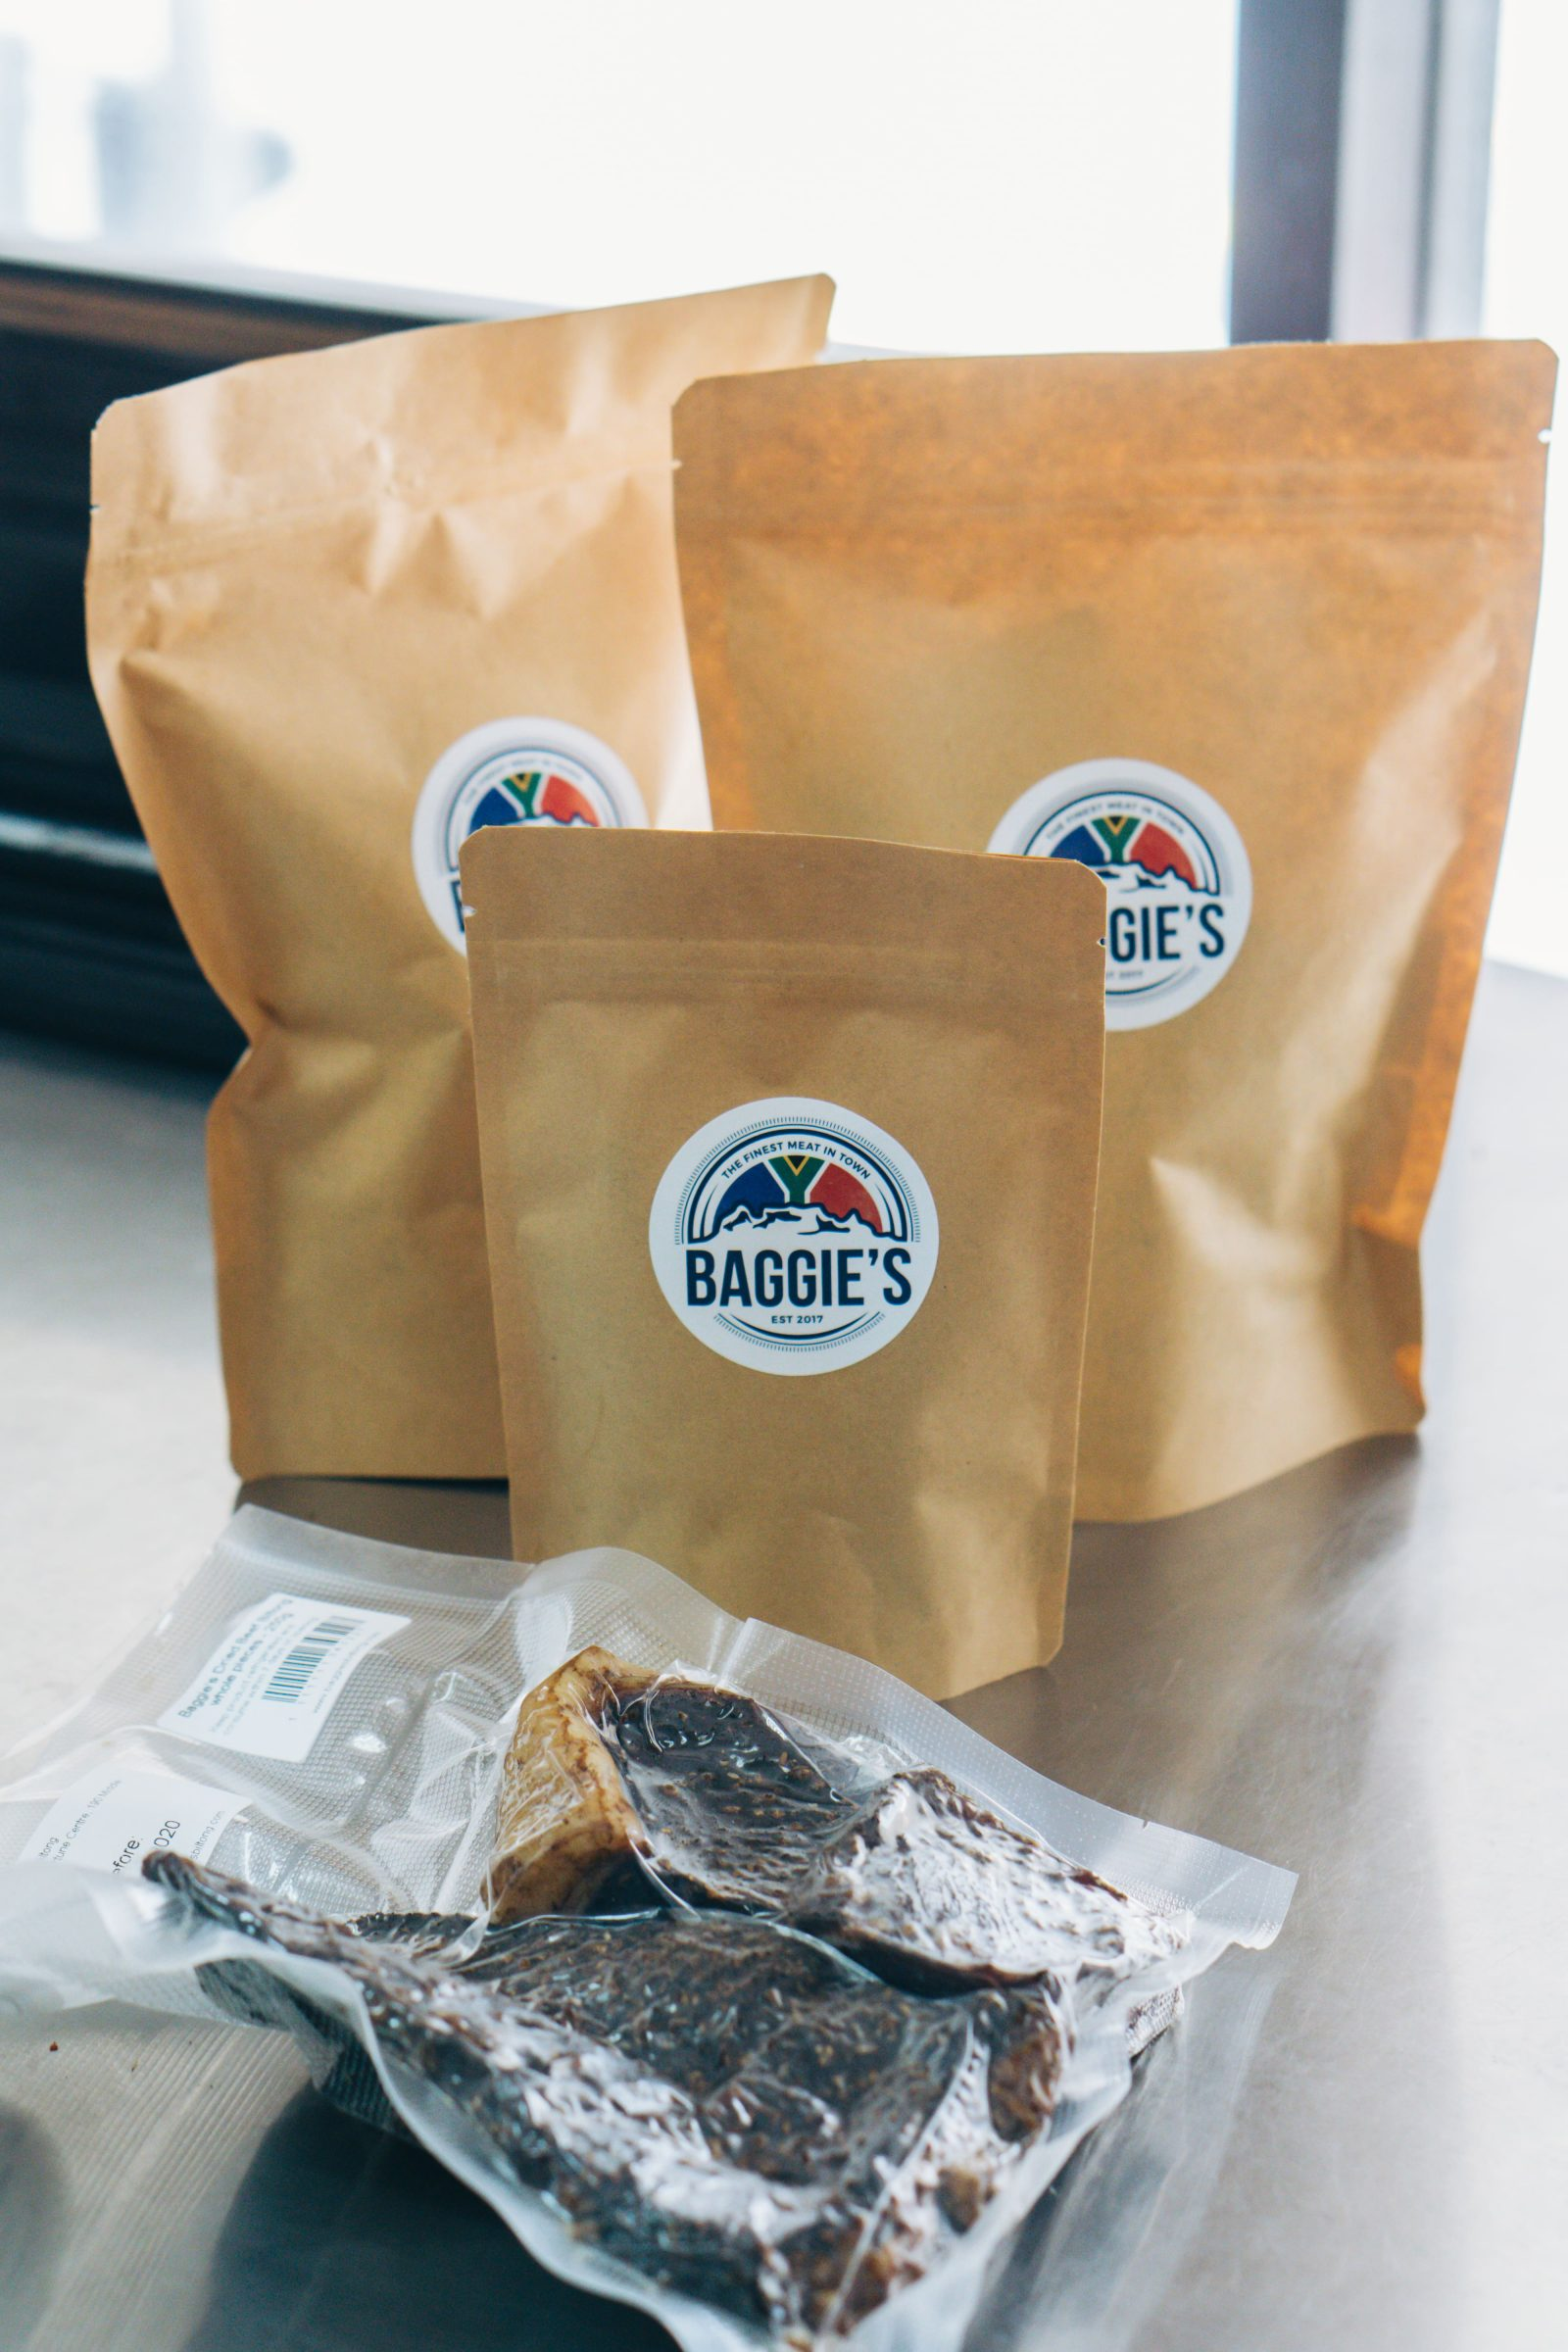 Baggie's biltong, a clean, lean source of protein